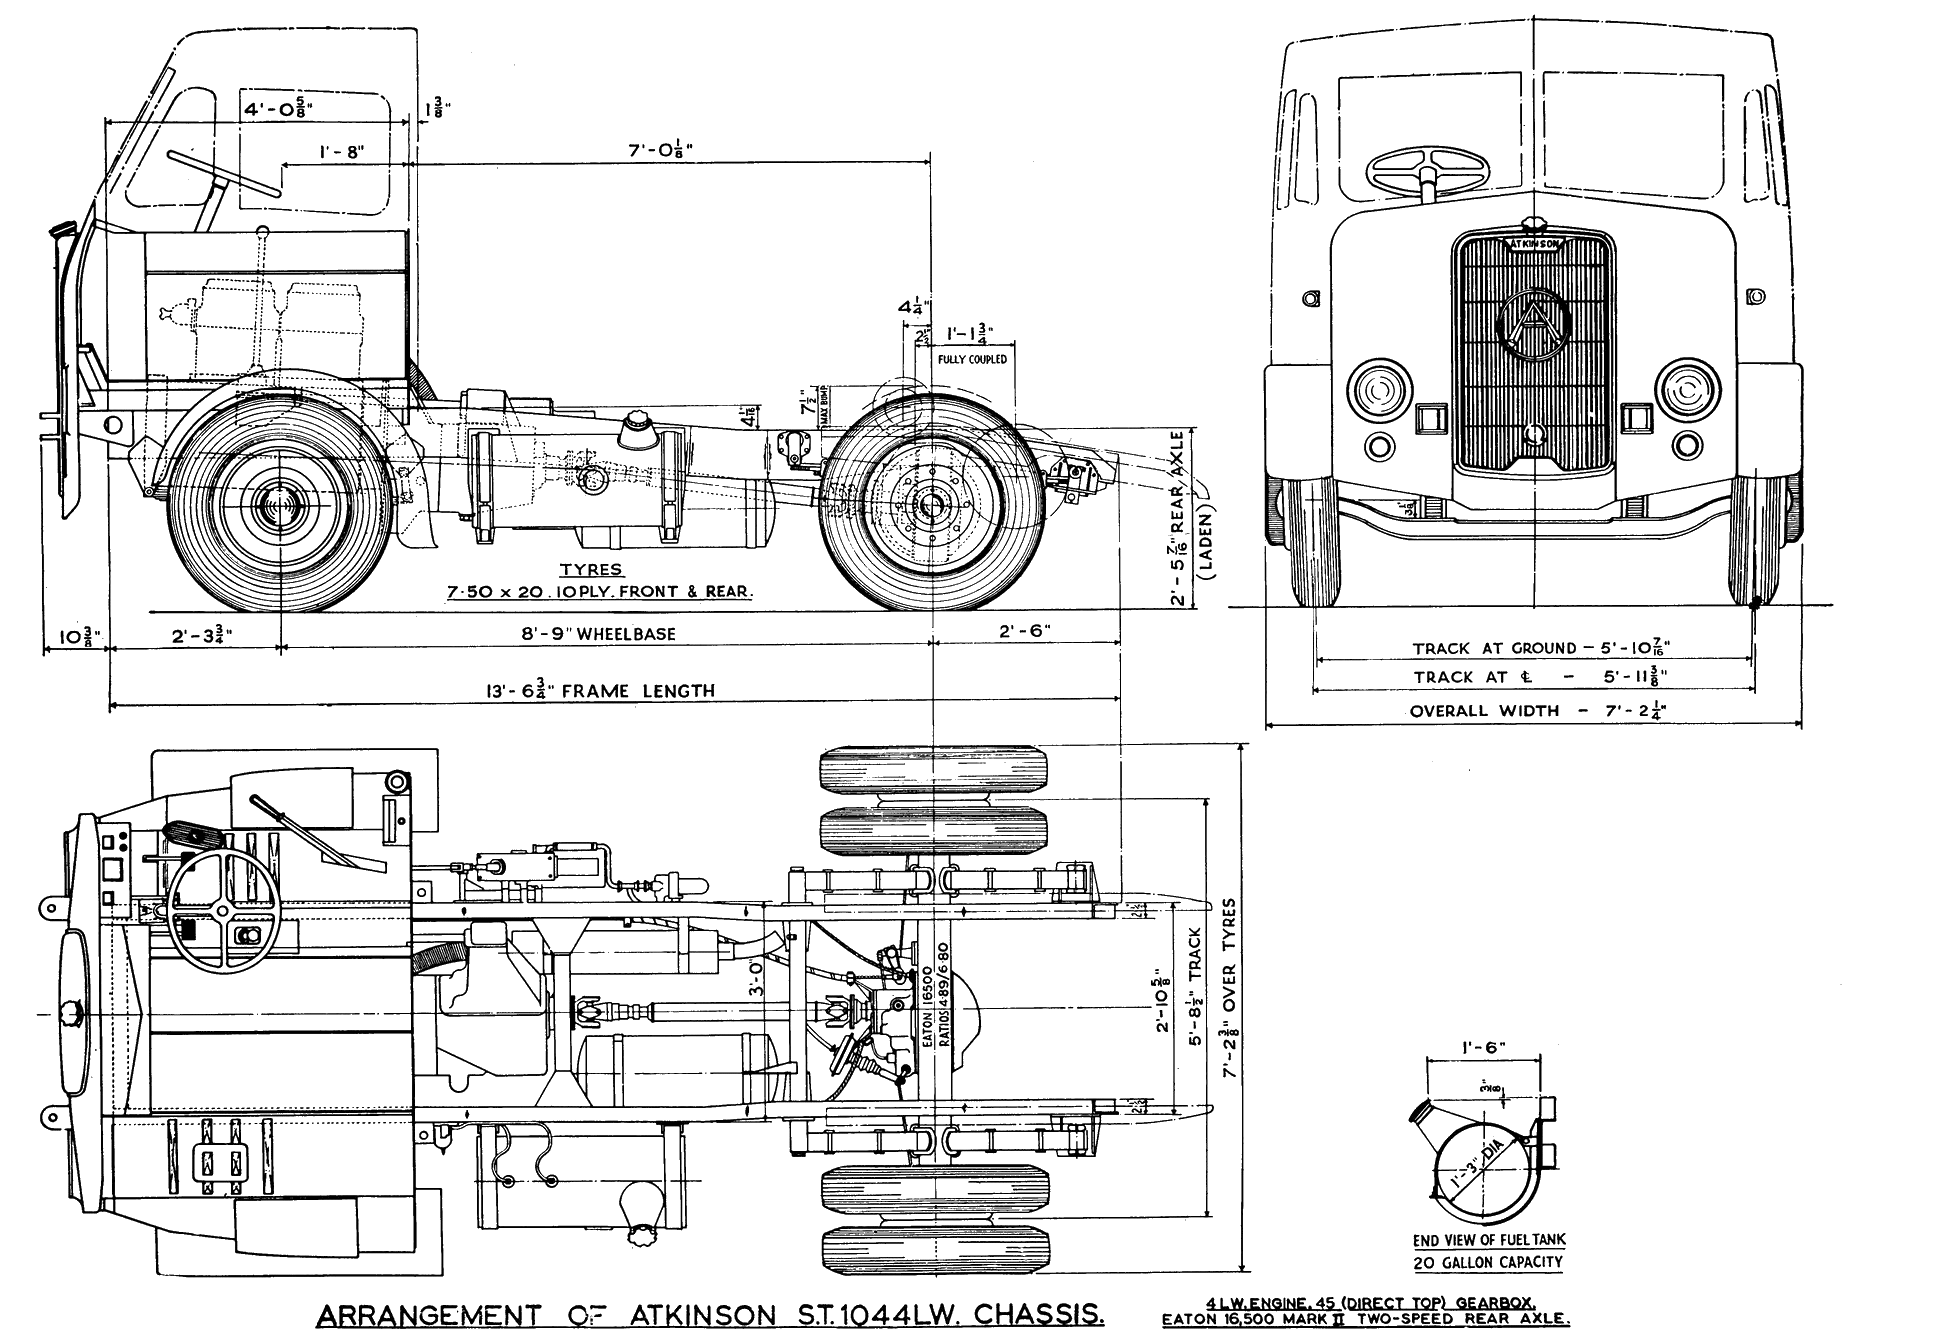 Atkinson st1044lw tractor truck 1954 blueprint download for Free 3d blueprints